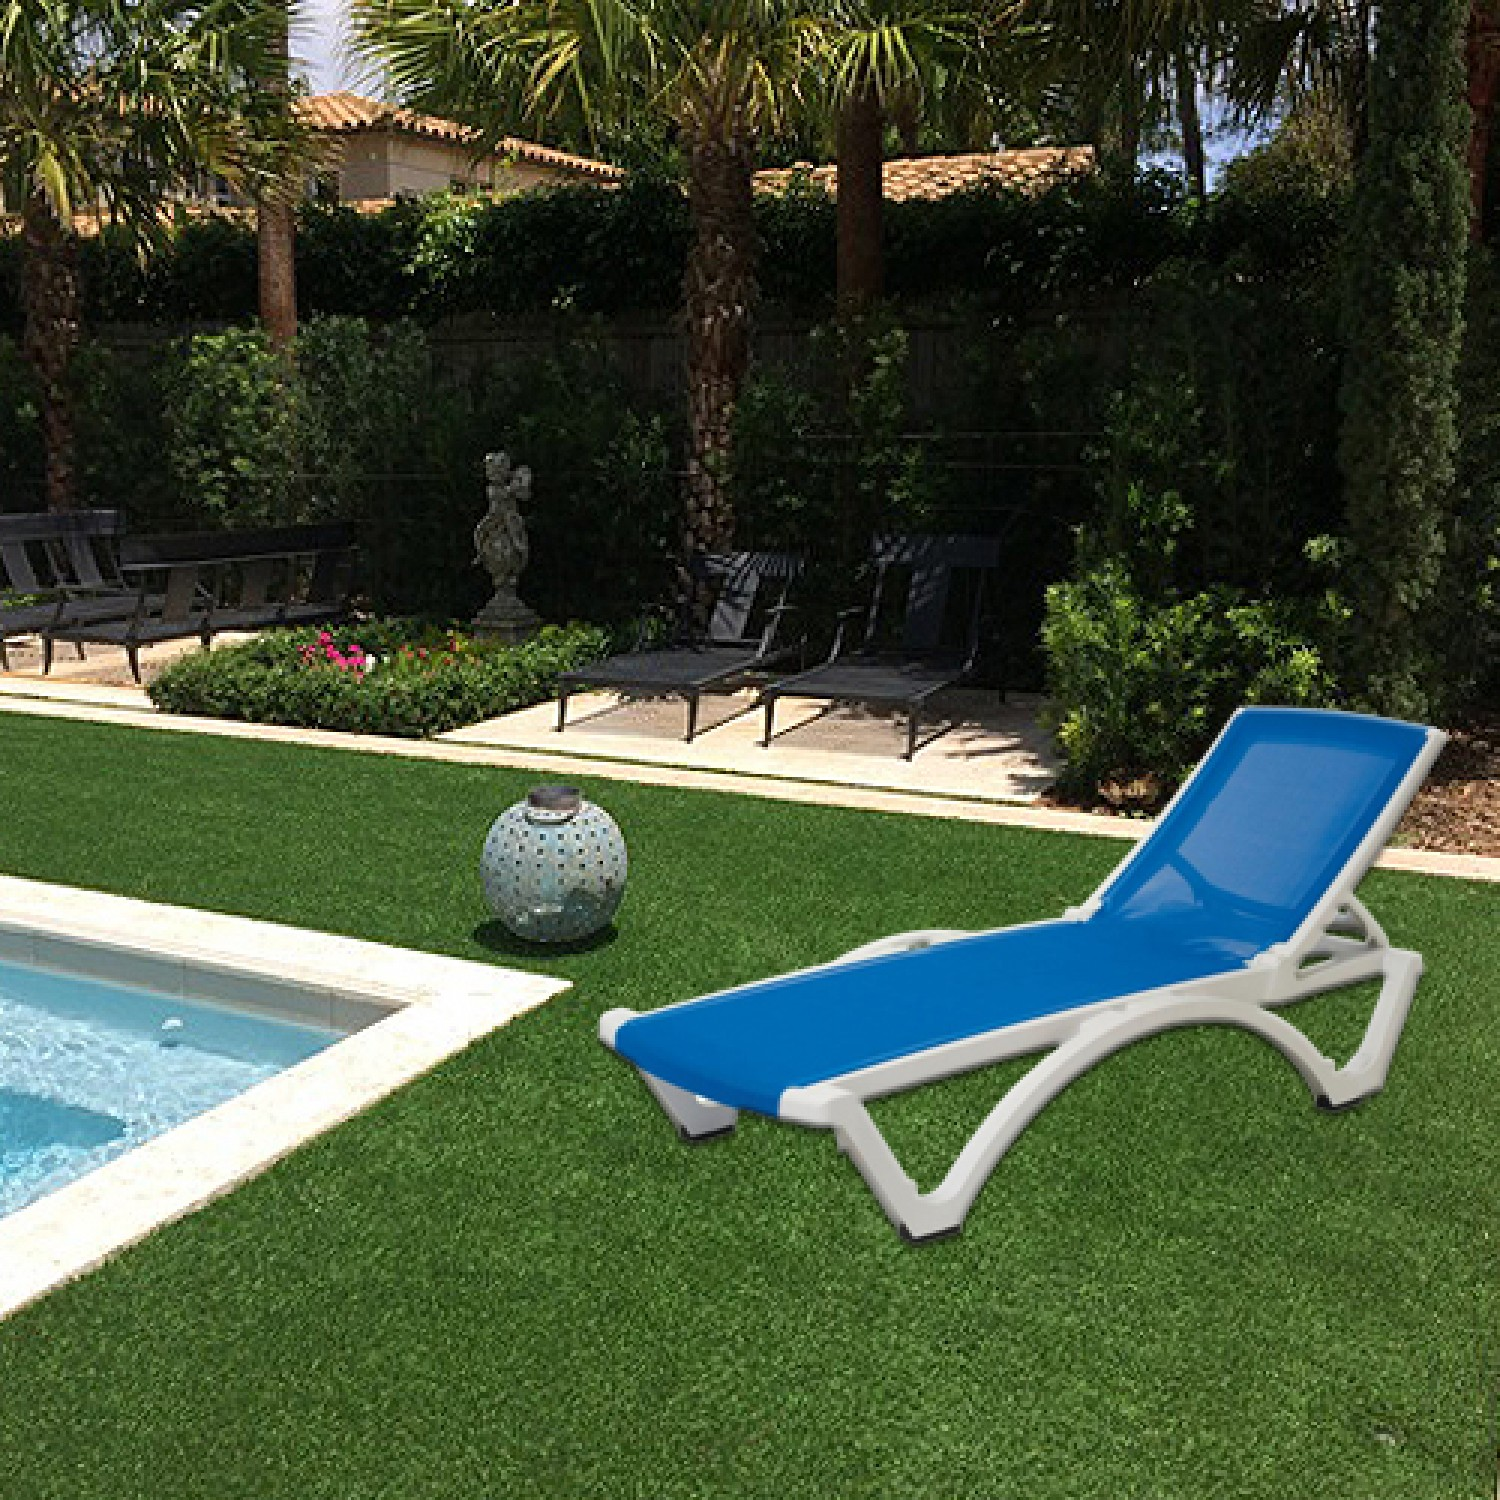 Baja Outdoor Chaise Lounger